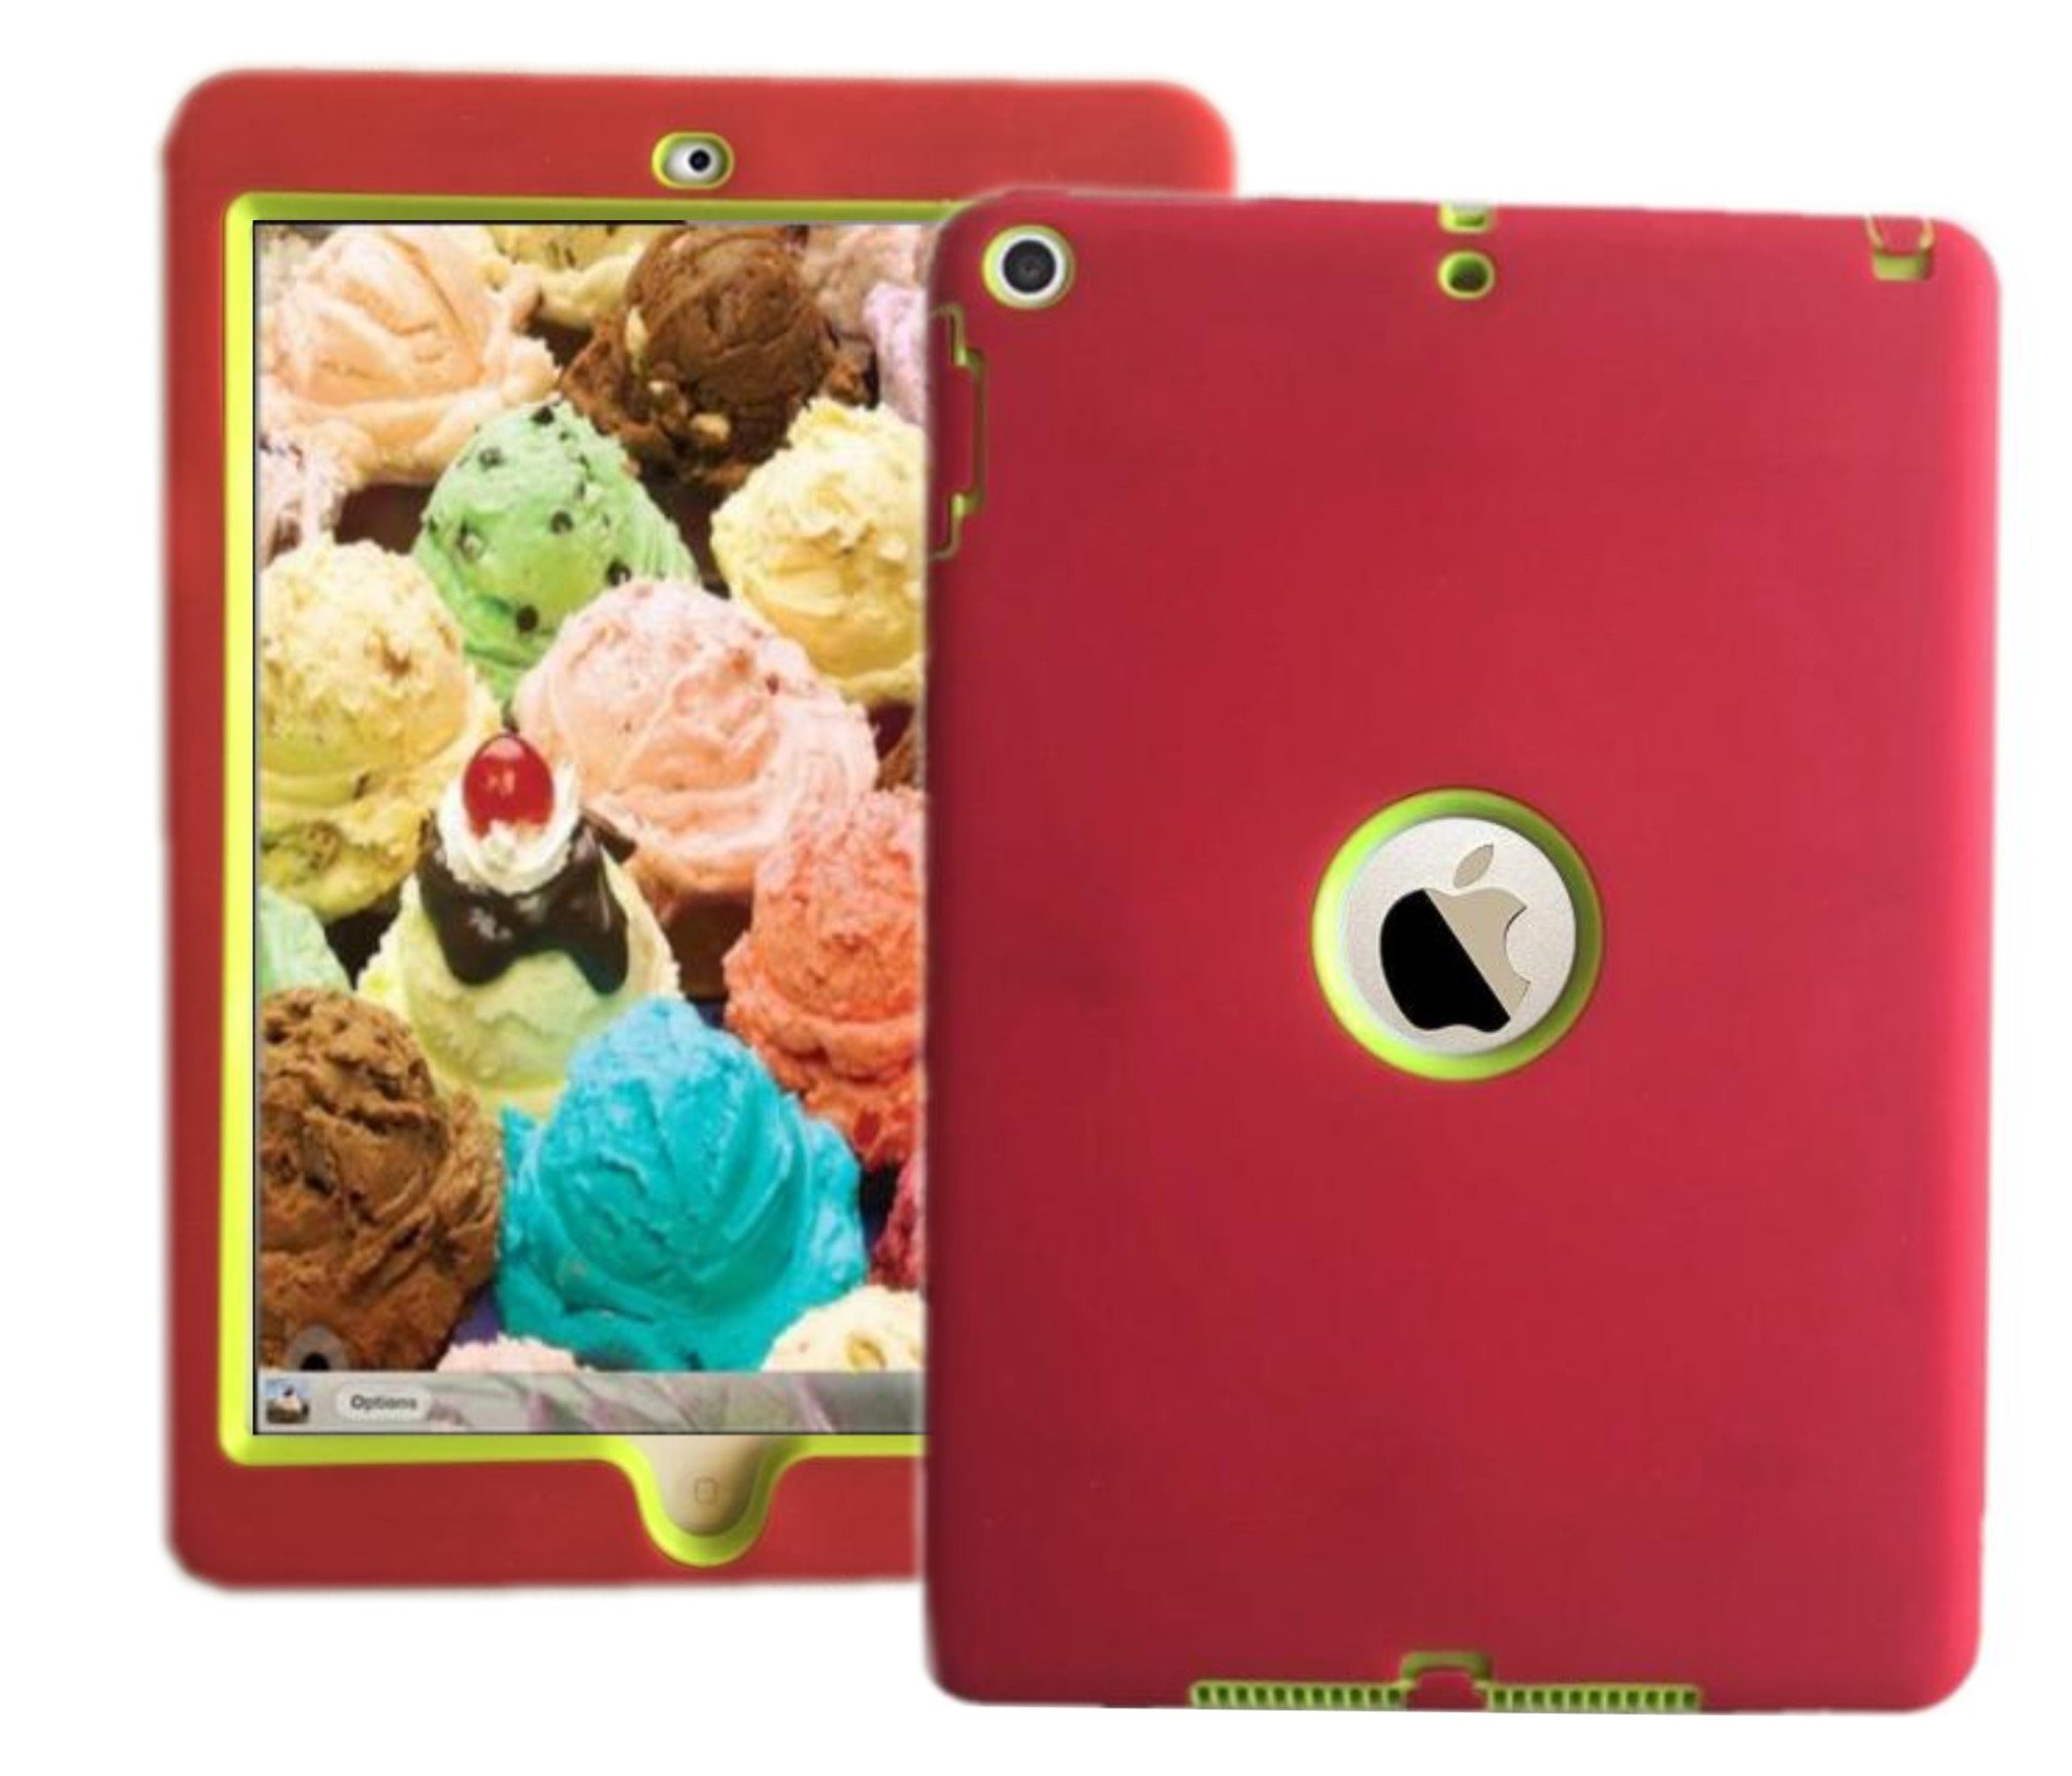 "2018 Ipad Case For iPad 9.7"" 2018/2017 Release Also Fit For iPad Air 1st 2013 Release Models A1893 A1954 A1822 A1823 A1747 A1475 MR6Y2LL/A MR7C2LL/AA MRM82LL/A MRJN2LL/A MRJP2LL/A Red/Green"